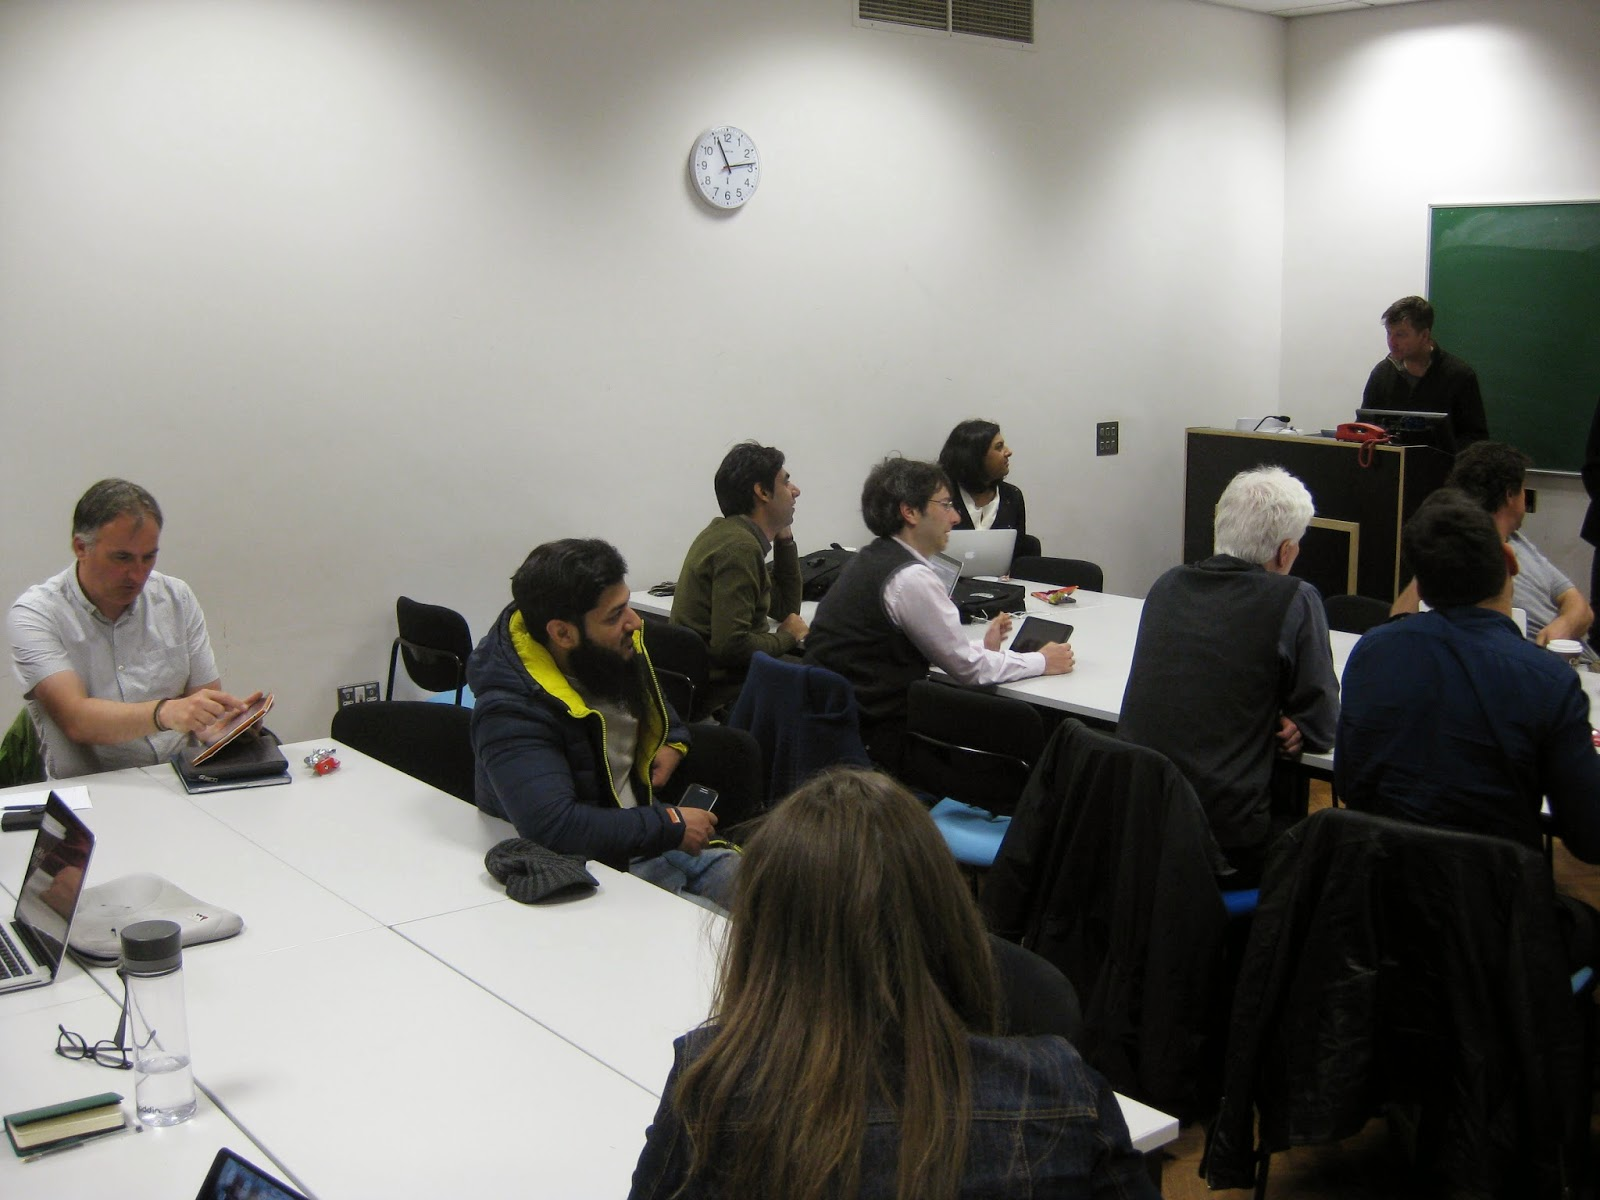 Photograph of University of Sheffield Learning Technologists meeting and discussing